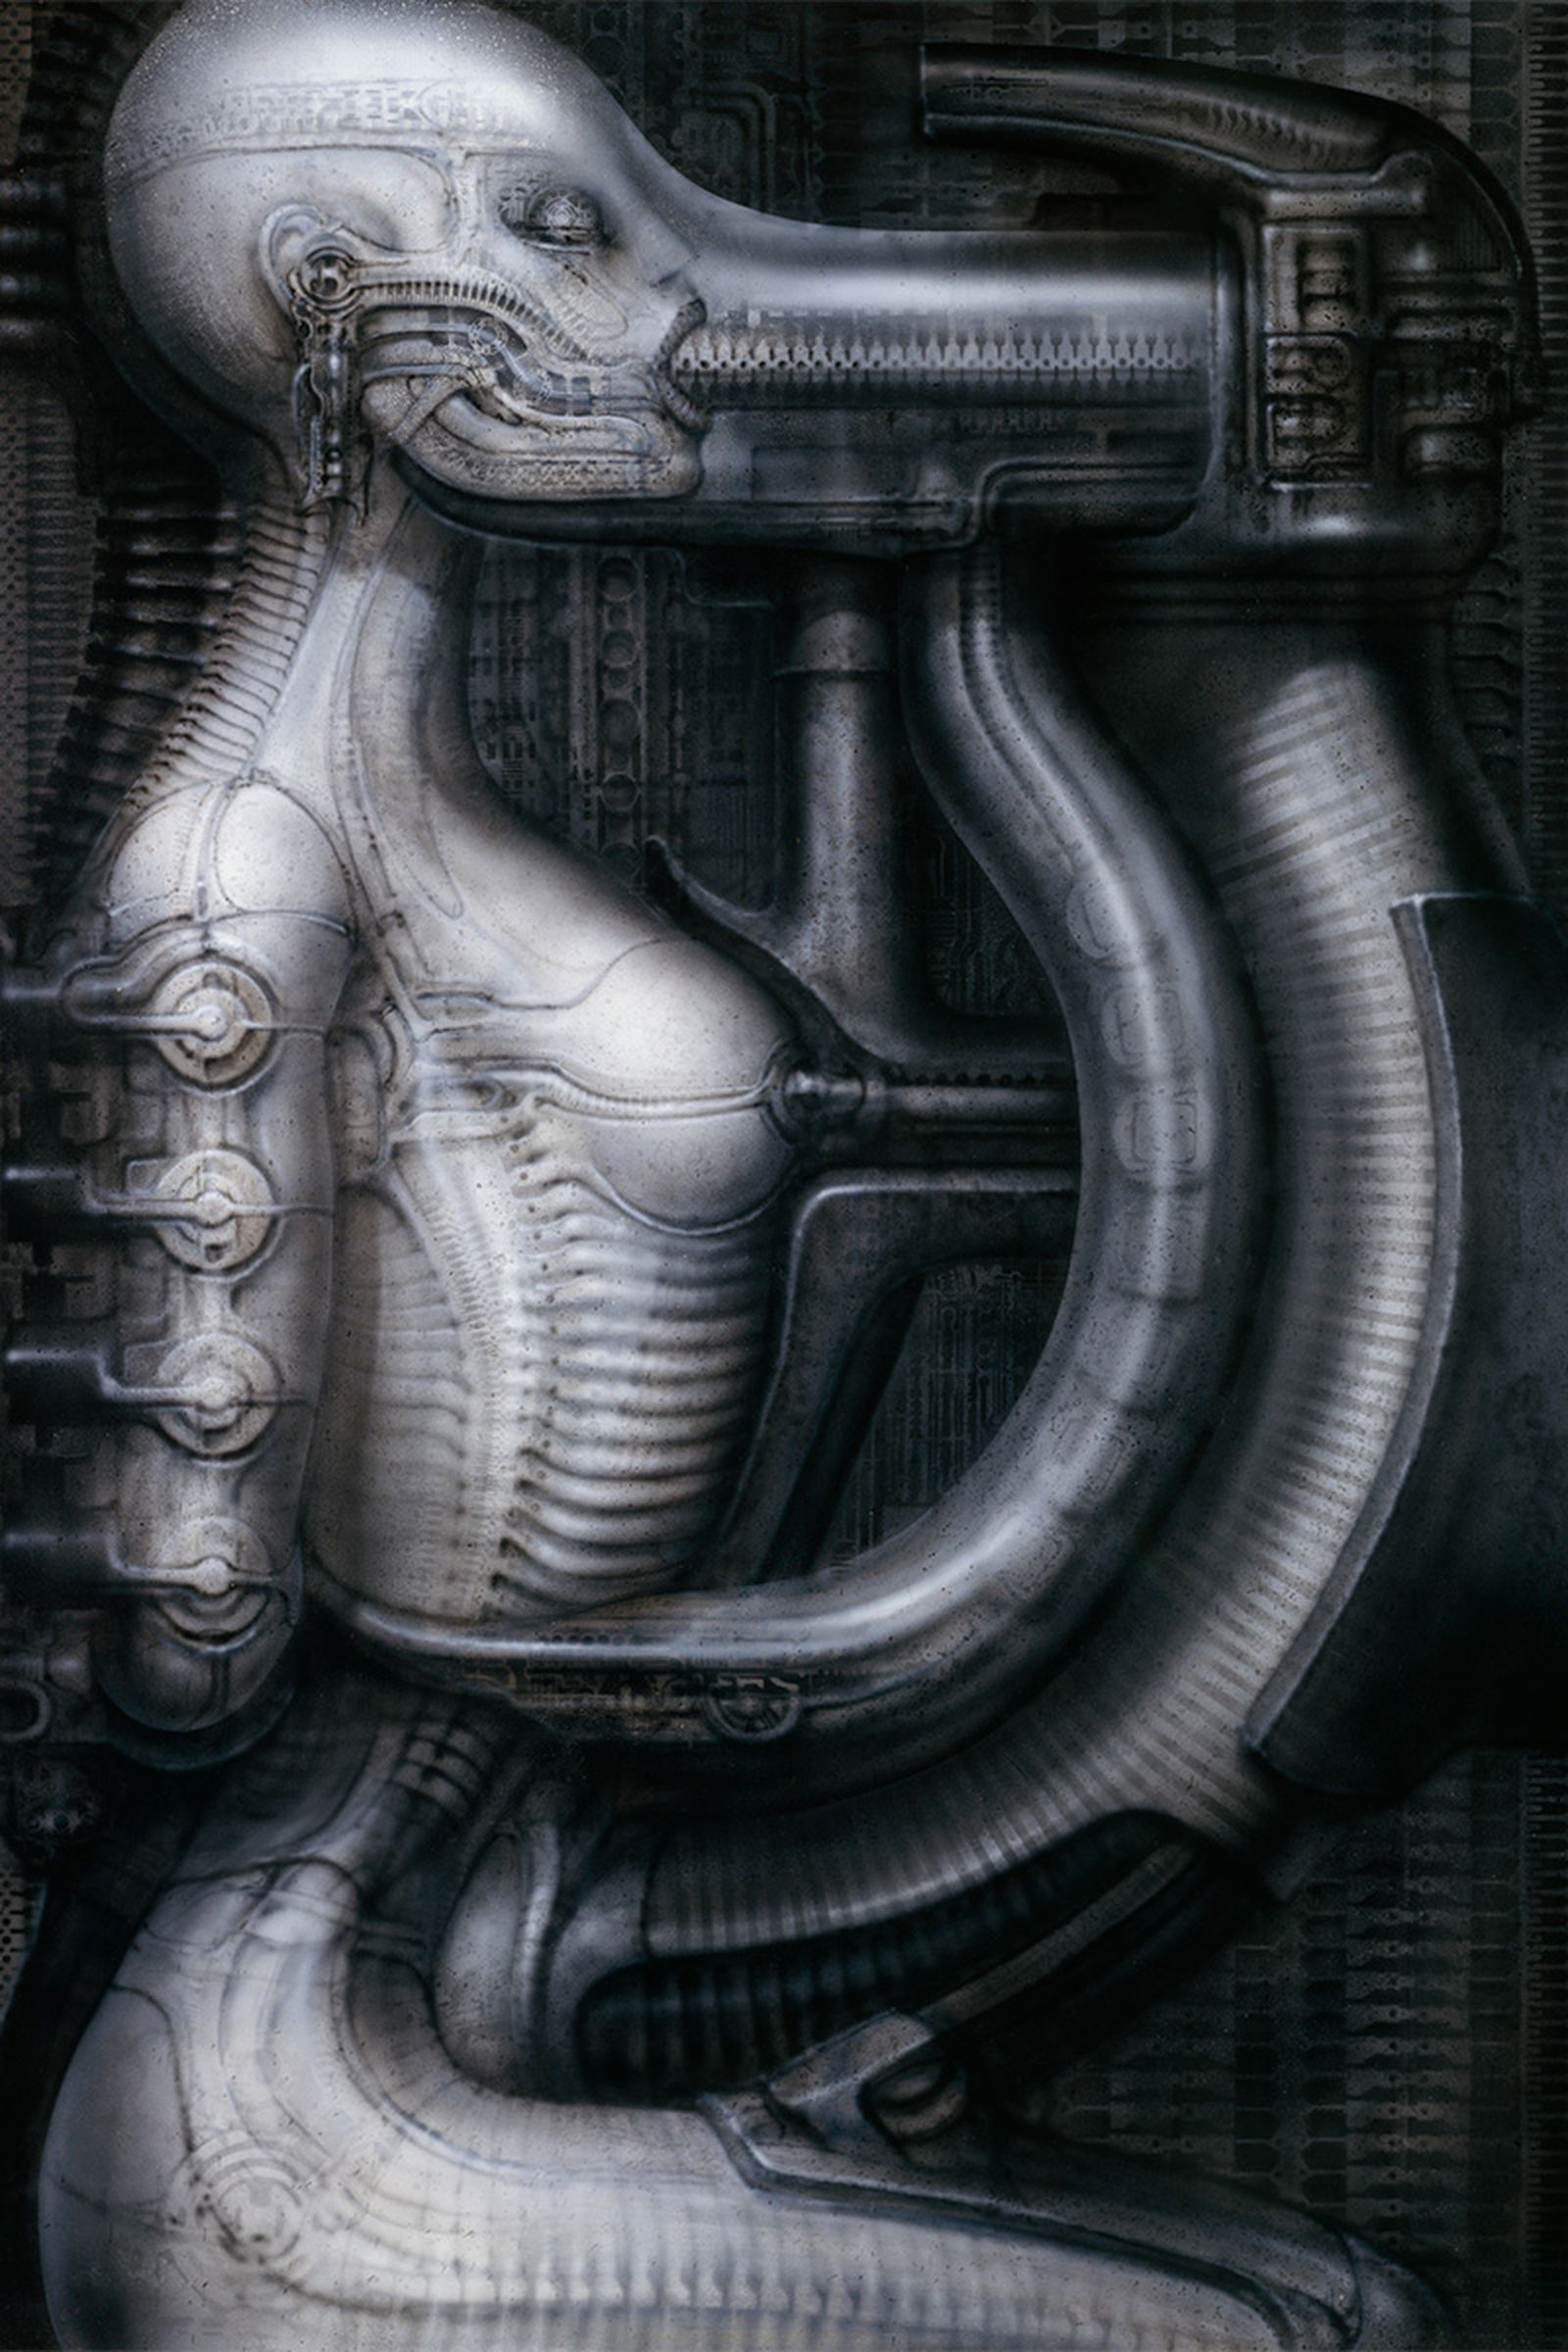 HR Giger, Biomechanoid I, 1975-83